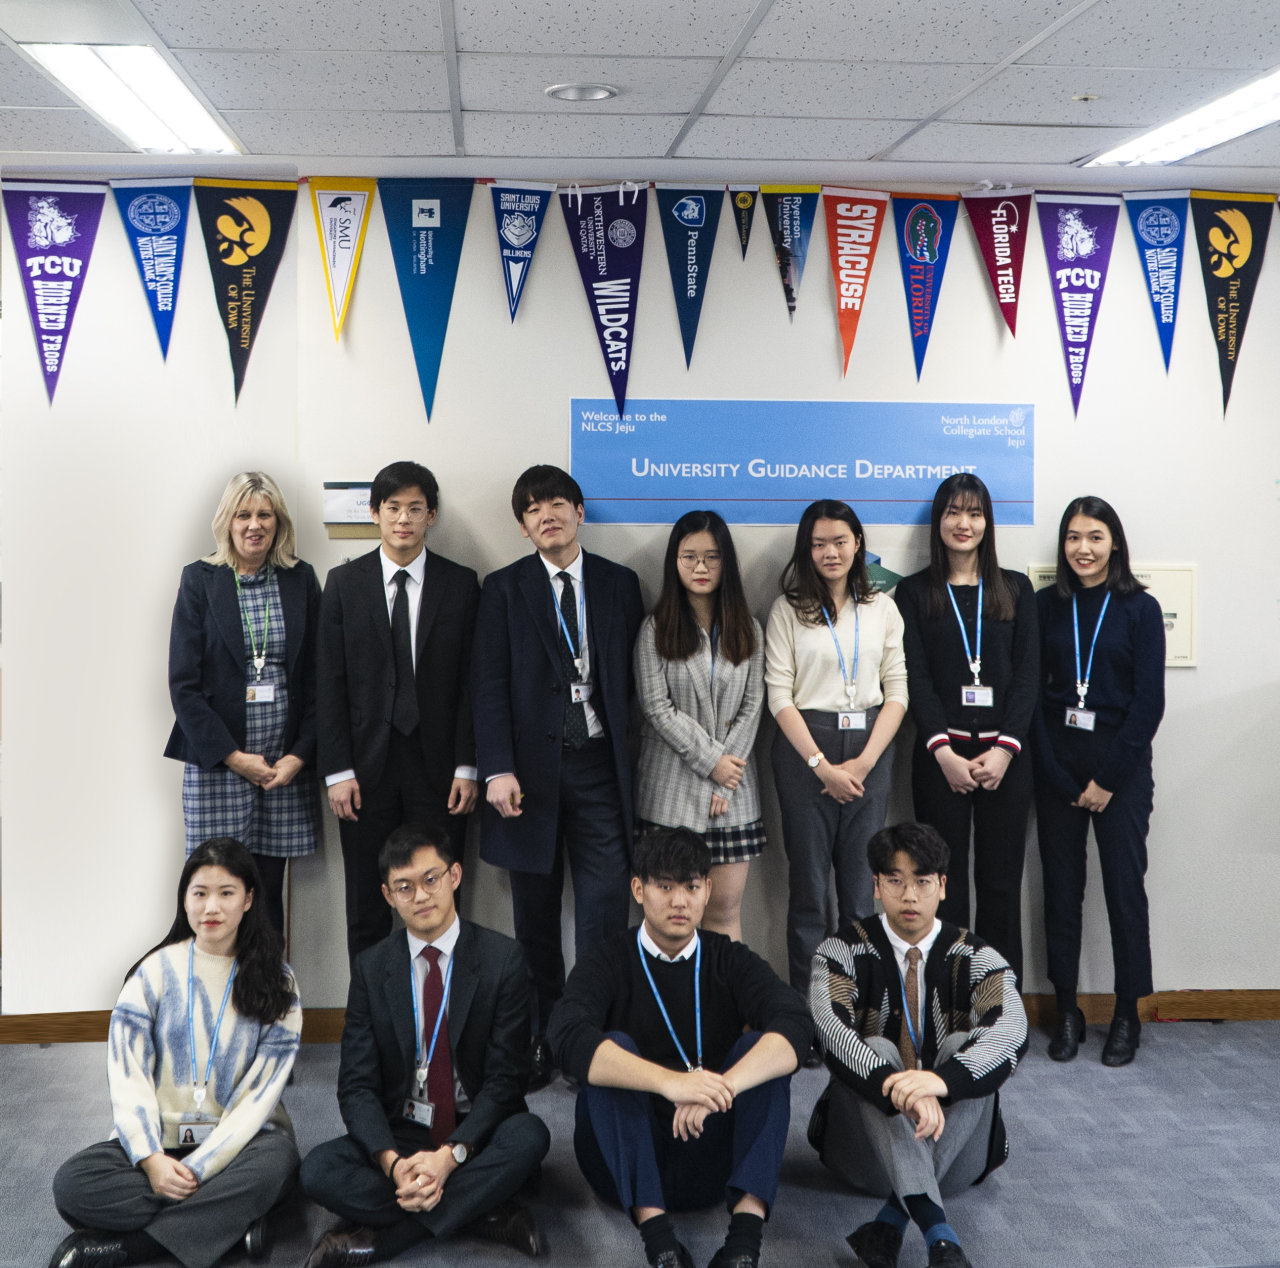 Students who were accepted into Oxford University or Cambridge University this year, from North London Collegiate School Jeju, pose for a photo with Lynne Oldfield (first from left, back row), principal of the school. (NLCS Jeju)